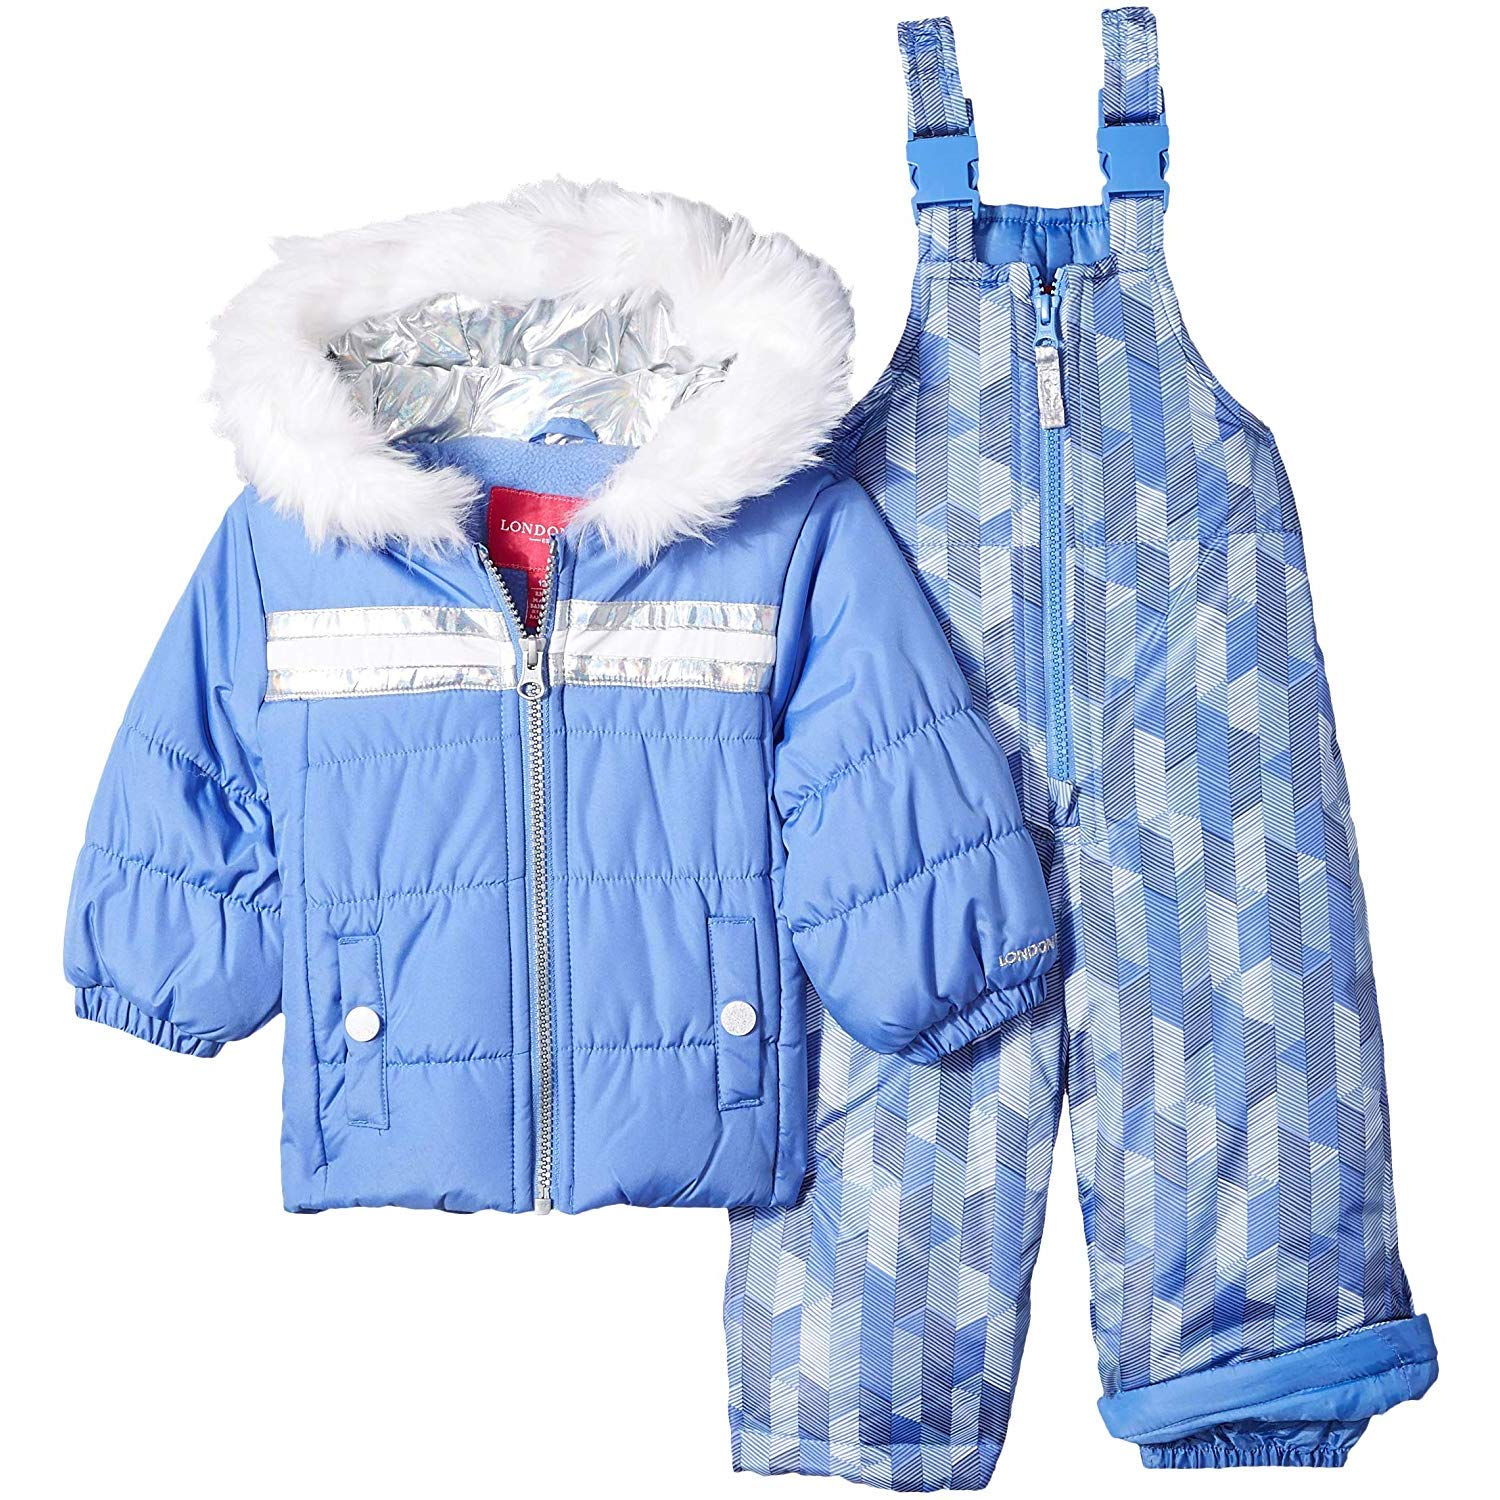 London Fog Girls' Toddler Snowsuit with Snowbib and Puffer Jacket, Lavender Blue Periwinkle, 2T by London Fog